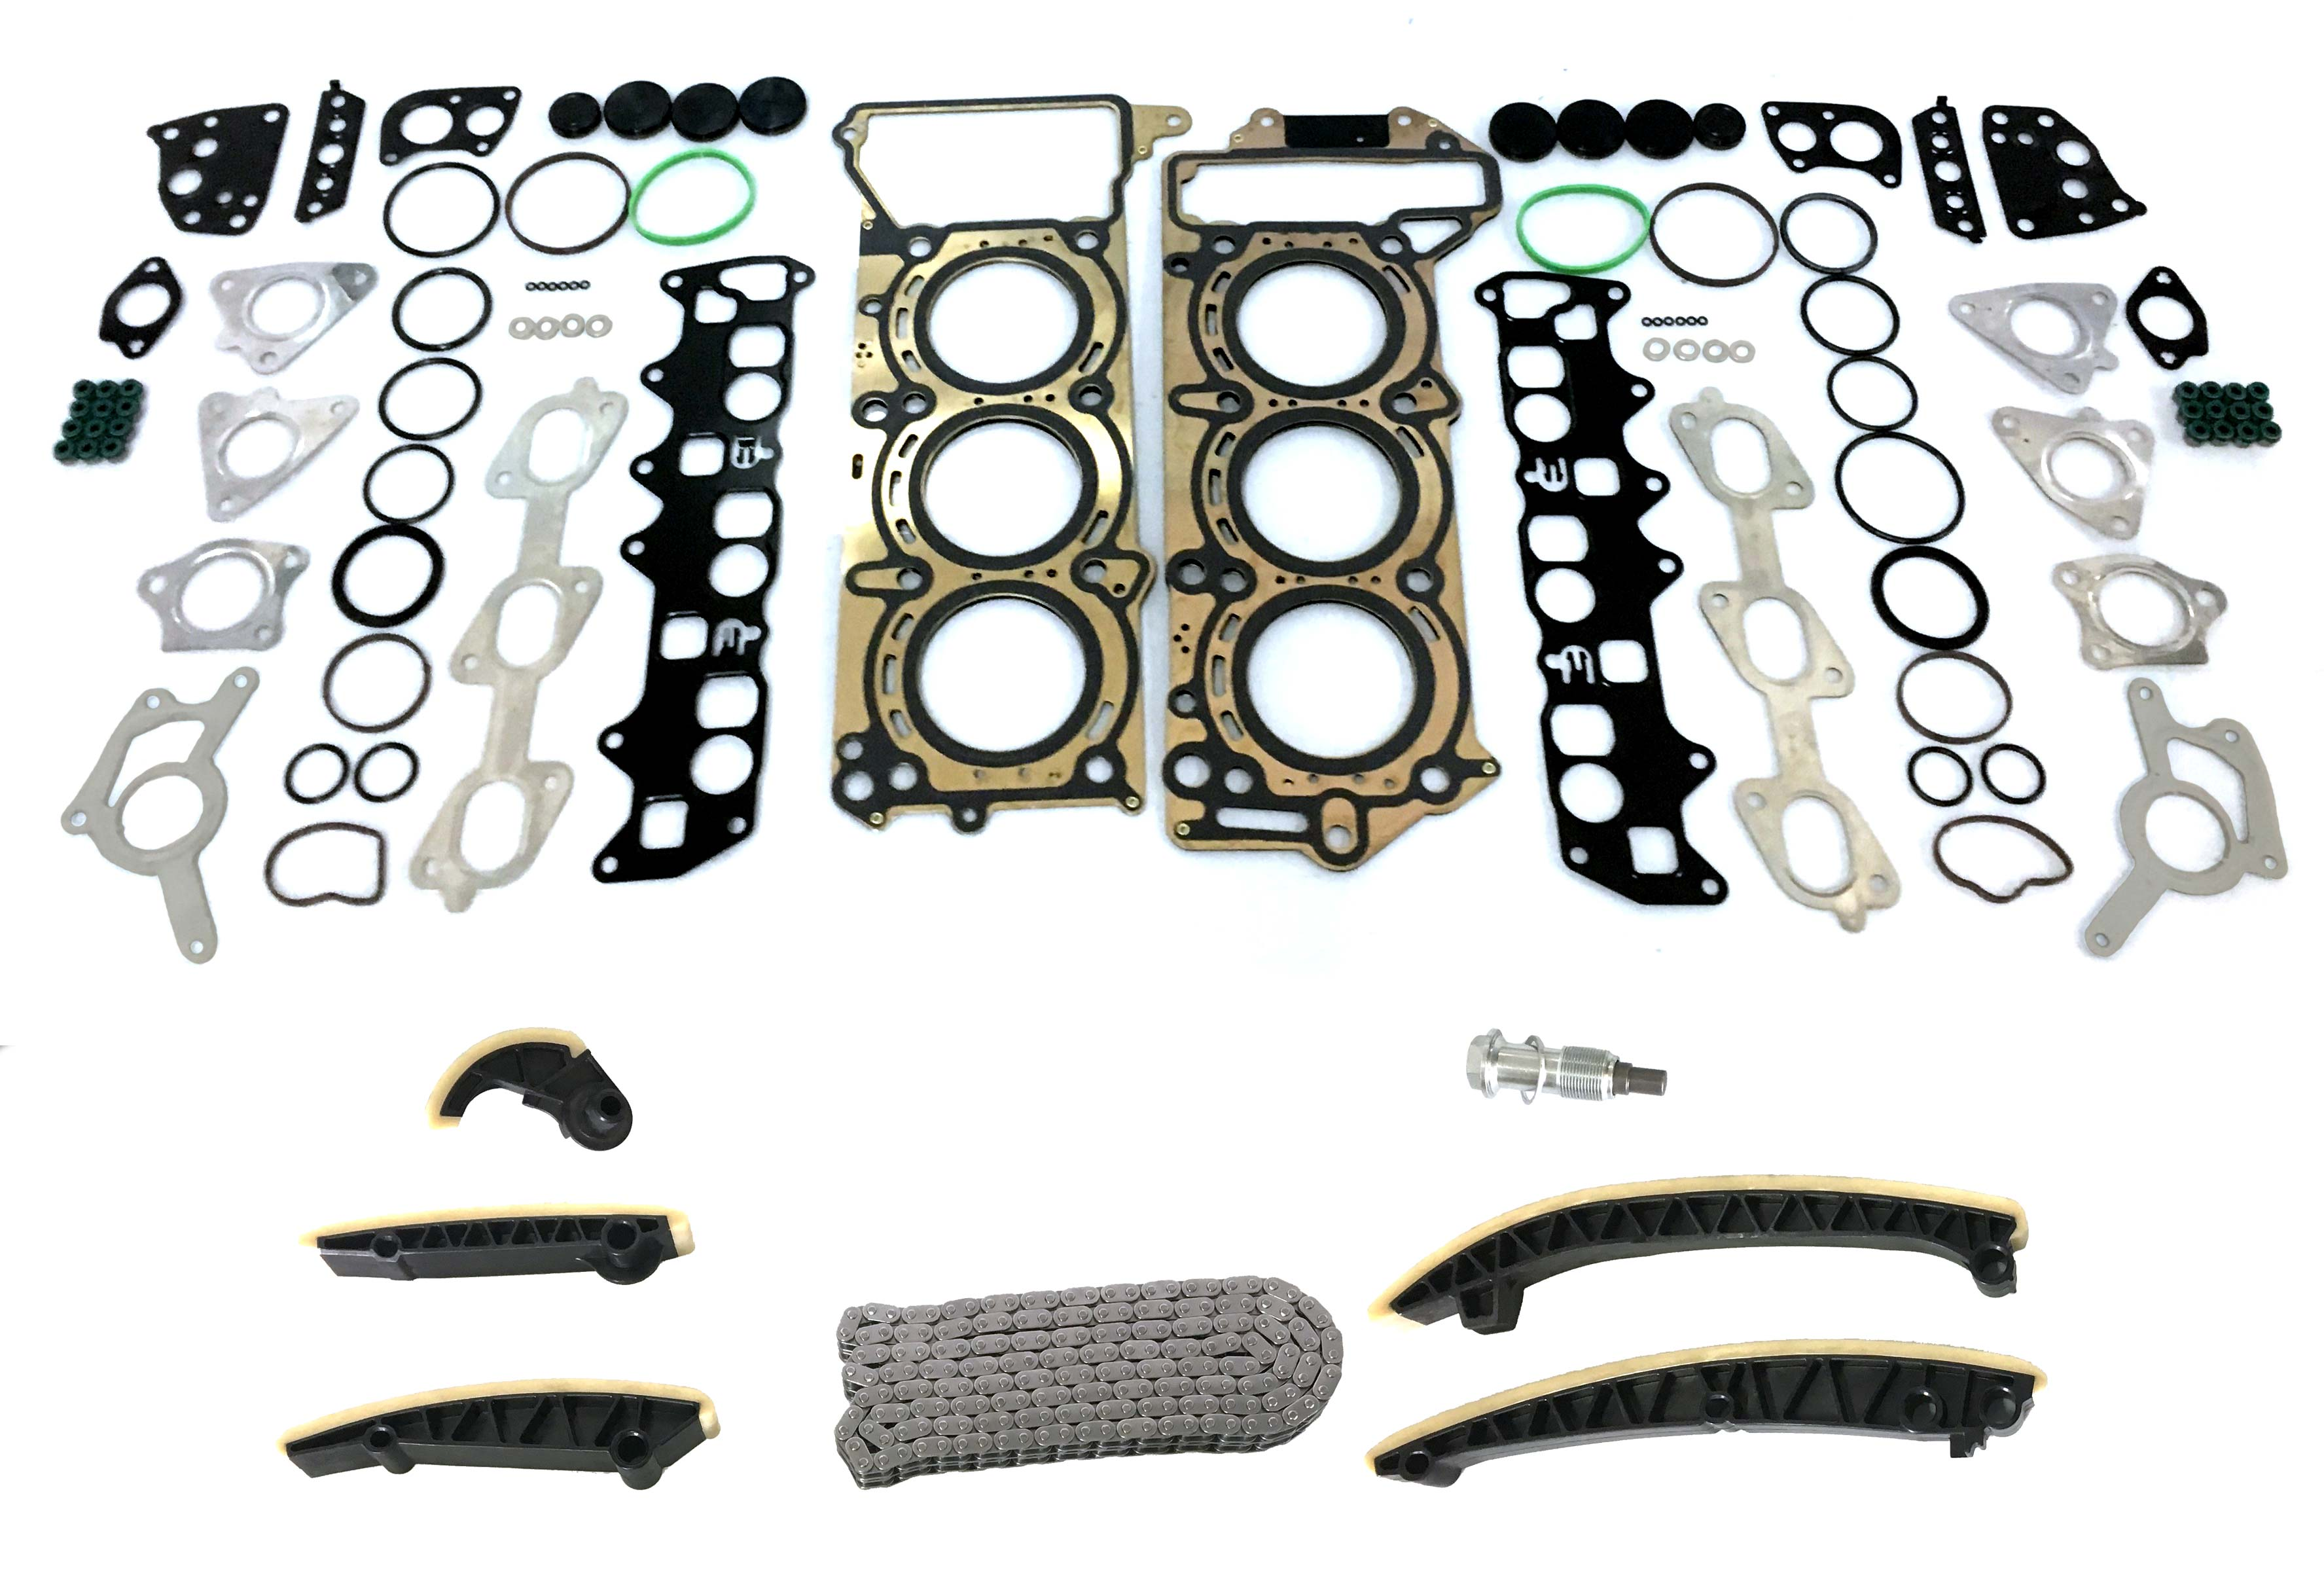 Cylinder head gasket Timing chain kit gasket set Mercedes 3.0 CDI 642.820 NEW